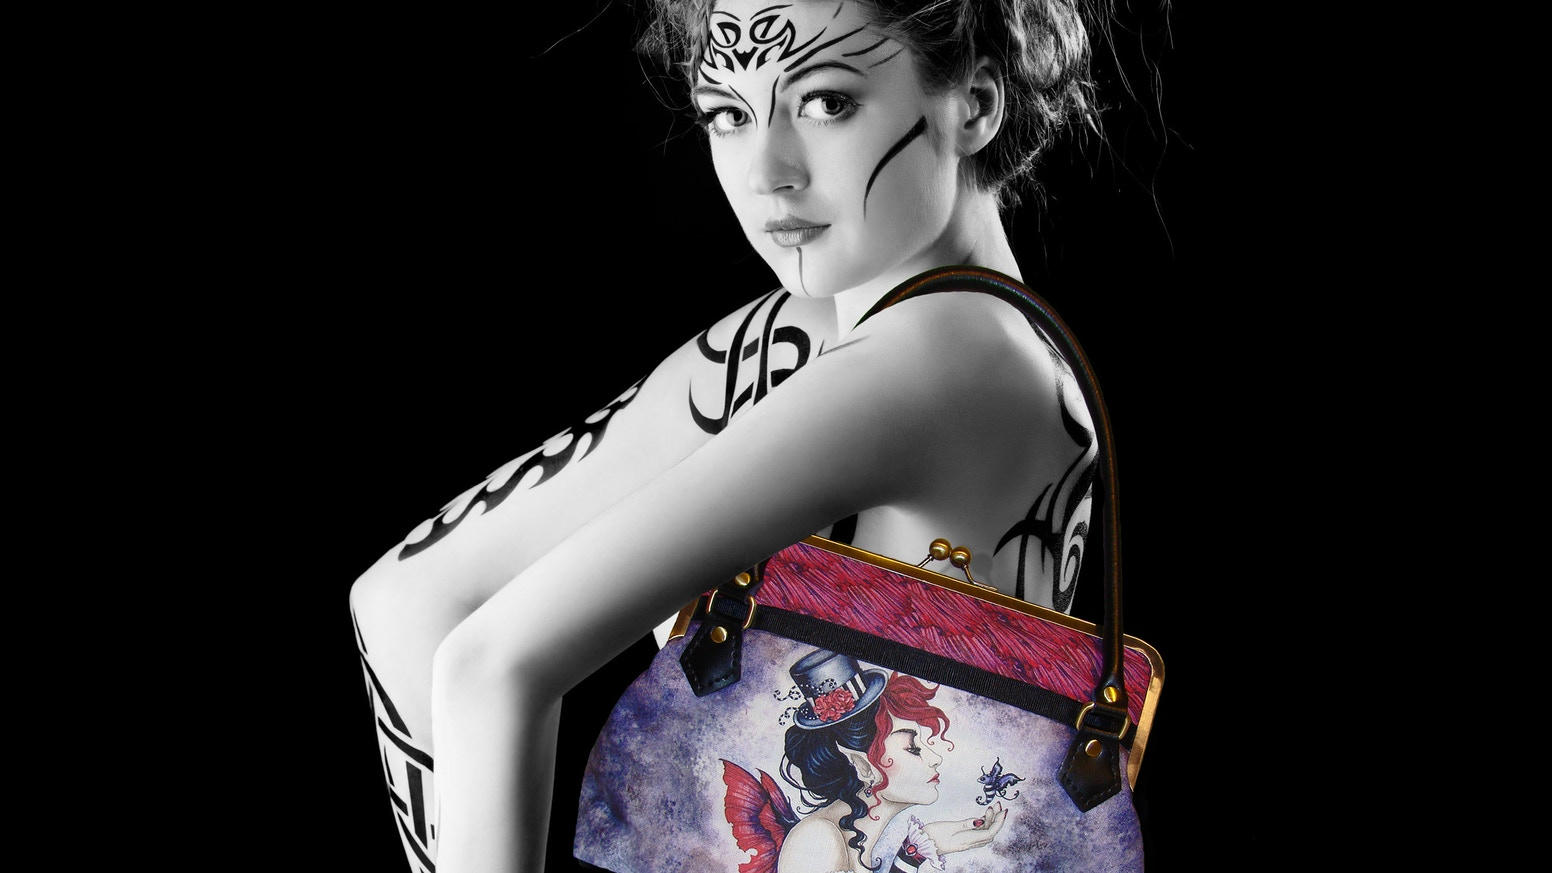 My newest handbag design. Handmade with exclusive fabric featuring licensed artwork by several great artists & my custom fob.